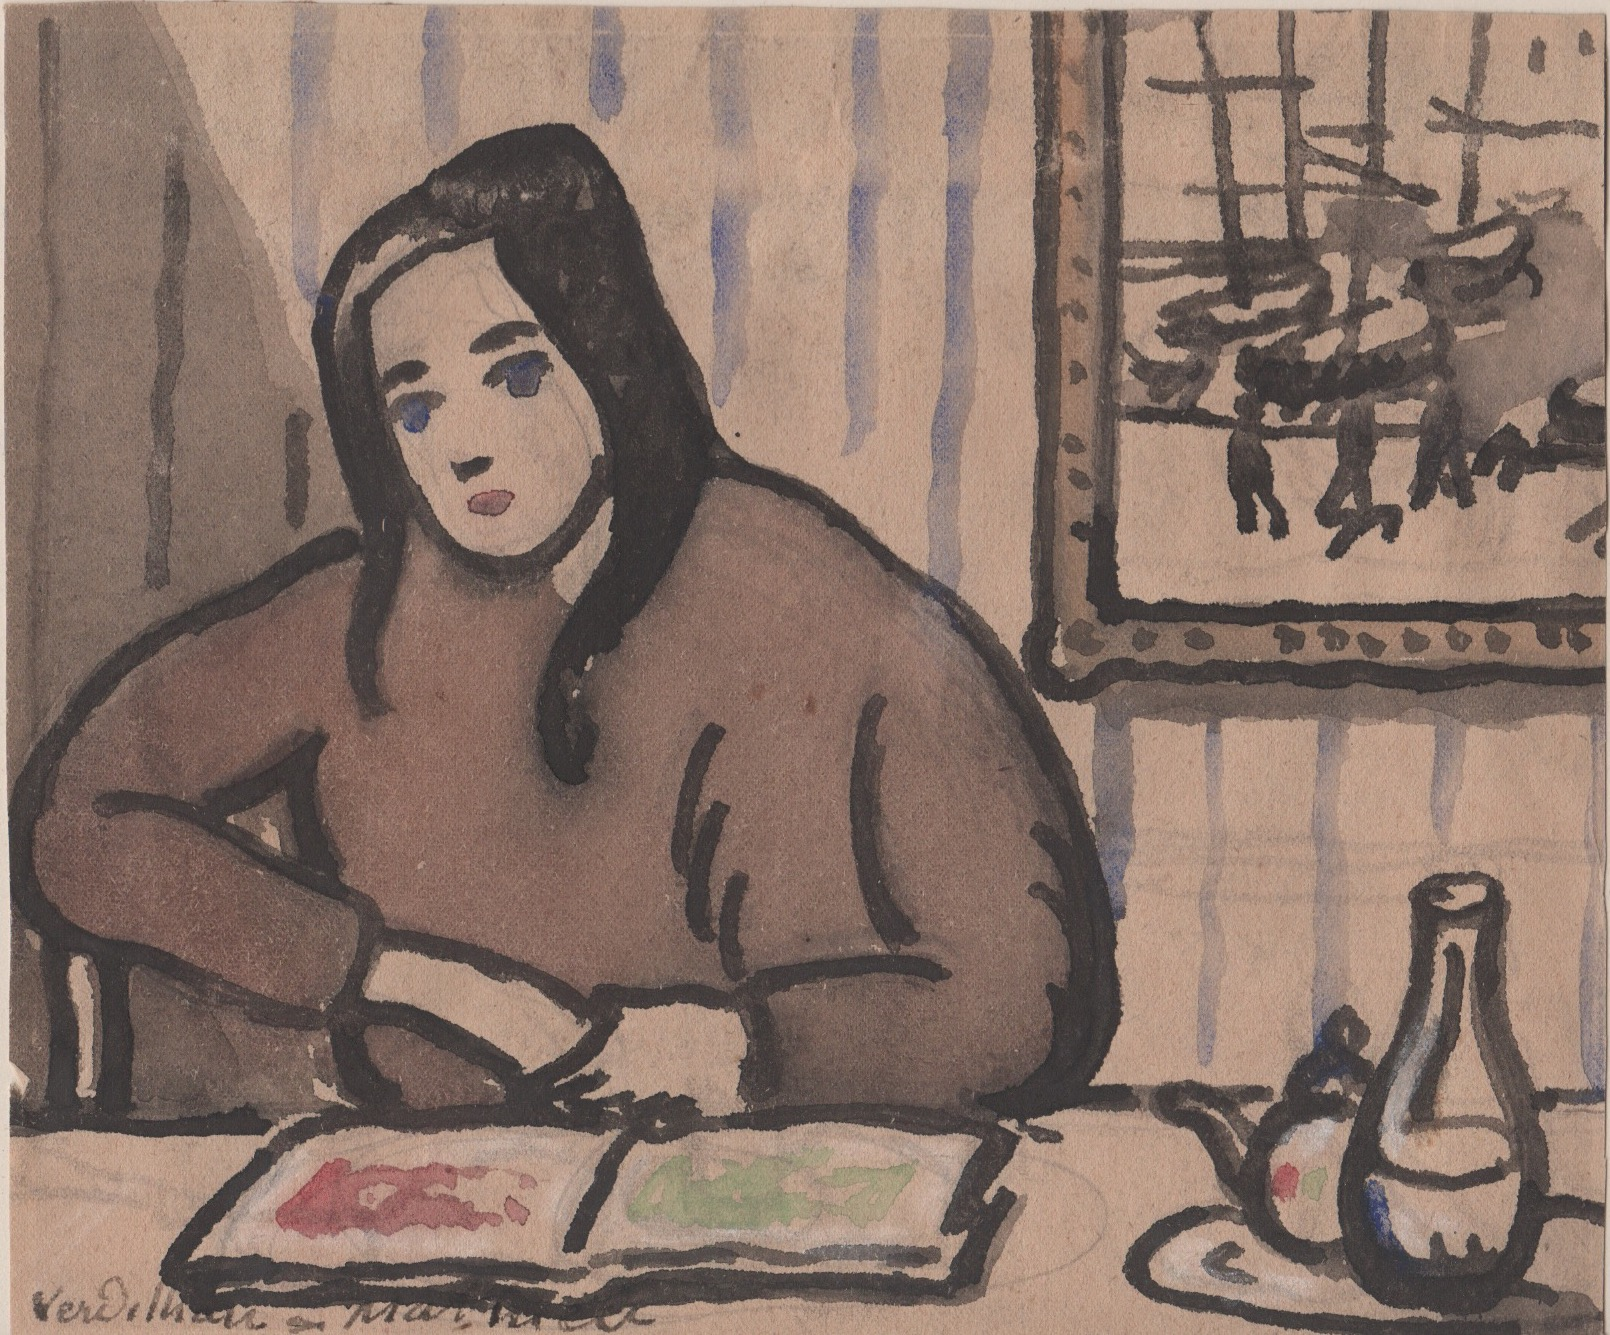 Watercolor of a woman sitting at a table with a tea pot and a pitcher next to her. Striped wallpaper and framed photo in background.